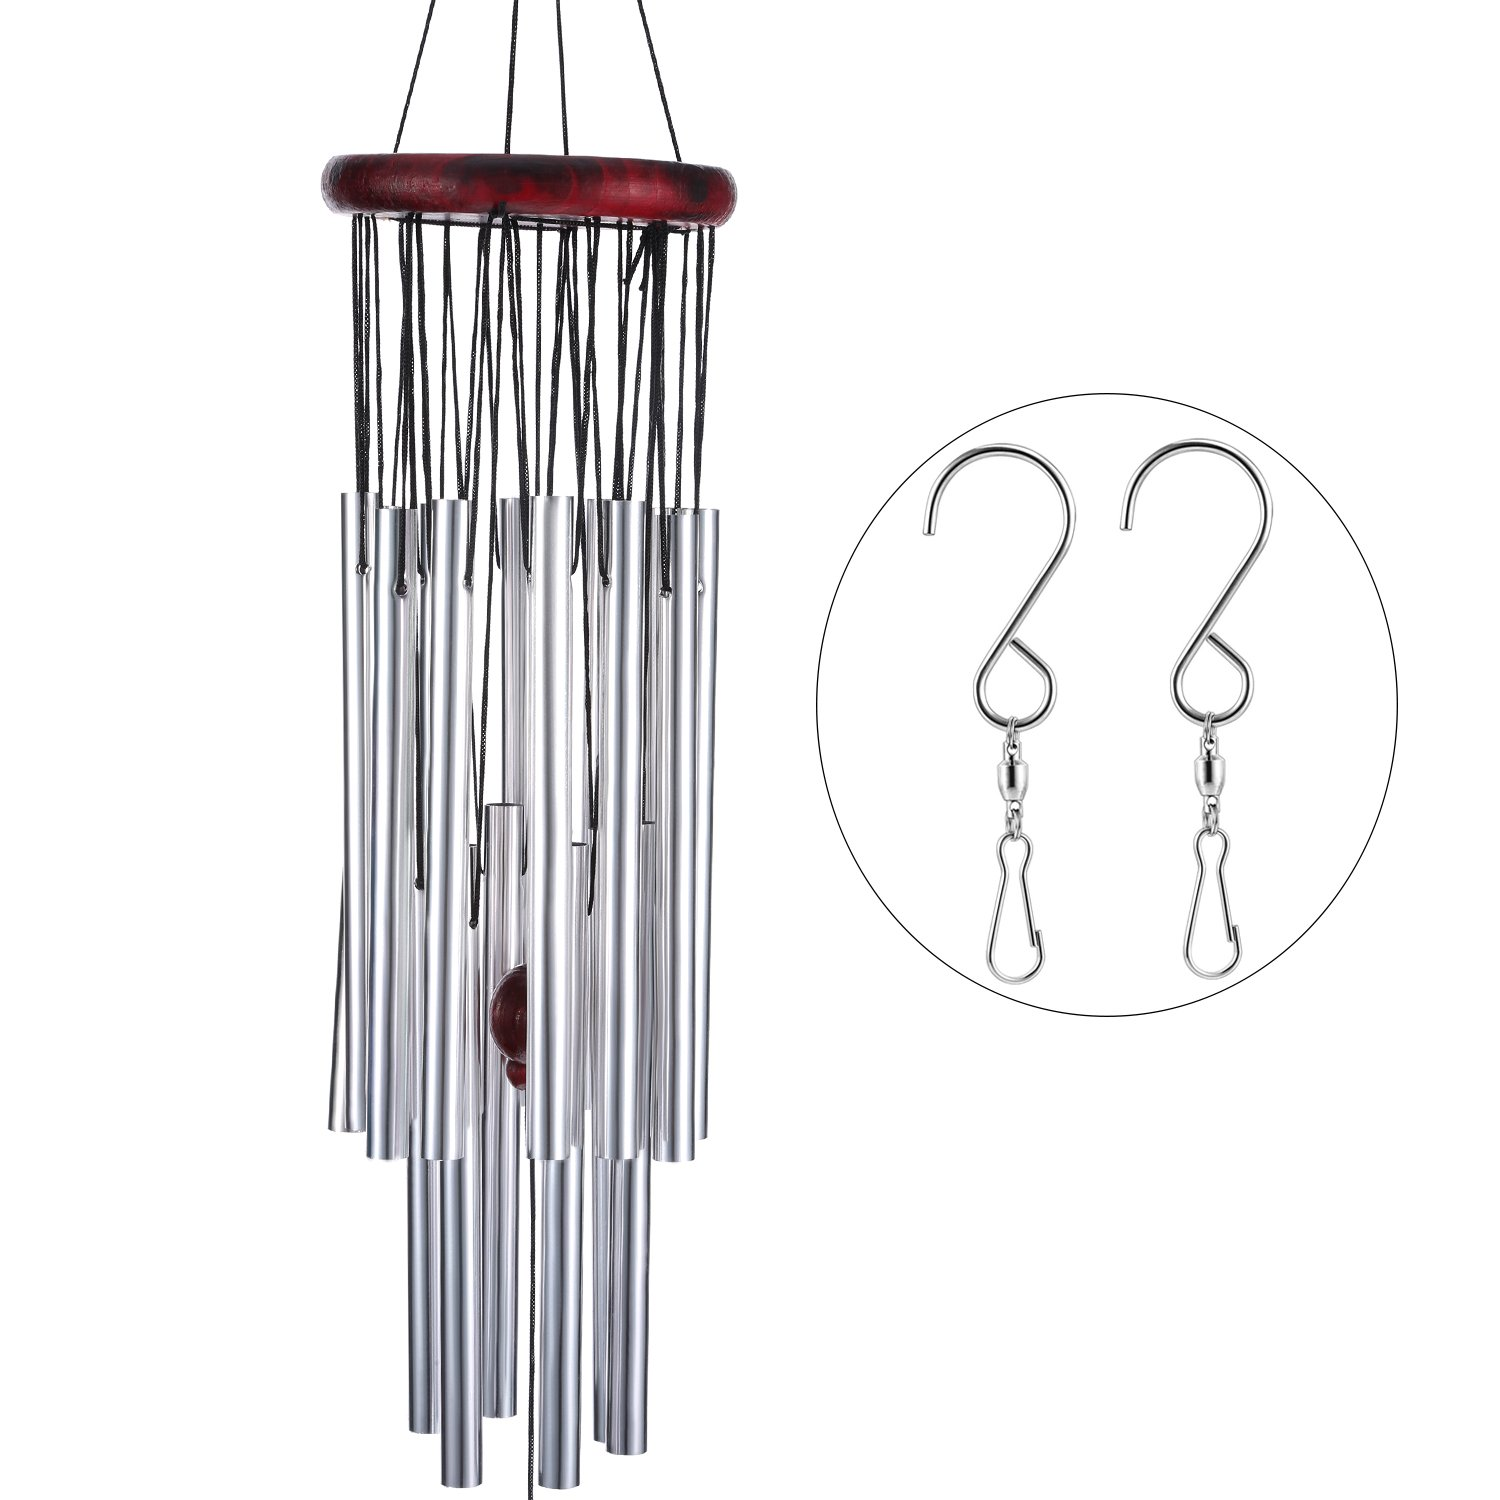 TecUnite Wind Chimes Grace Chime 18 Aluminum Alloy Tubes Large Wind Bells for Decorating Indoor Conversation Area Balcony Back Porch Outdoor Patio Backyard, Garden with 2 Pack Swivel Hooks Clips, Silv